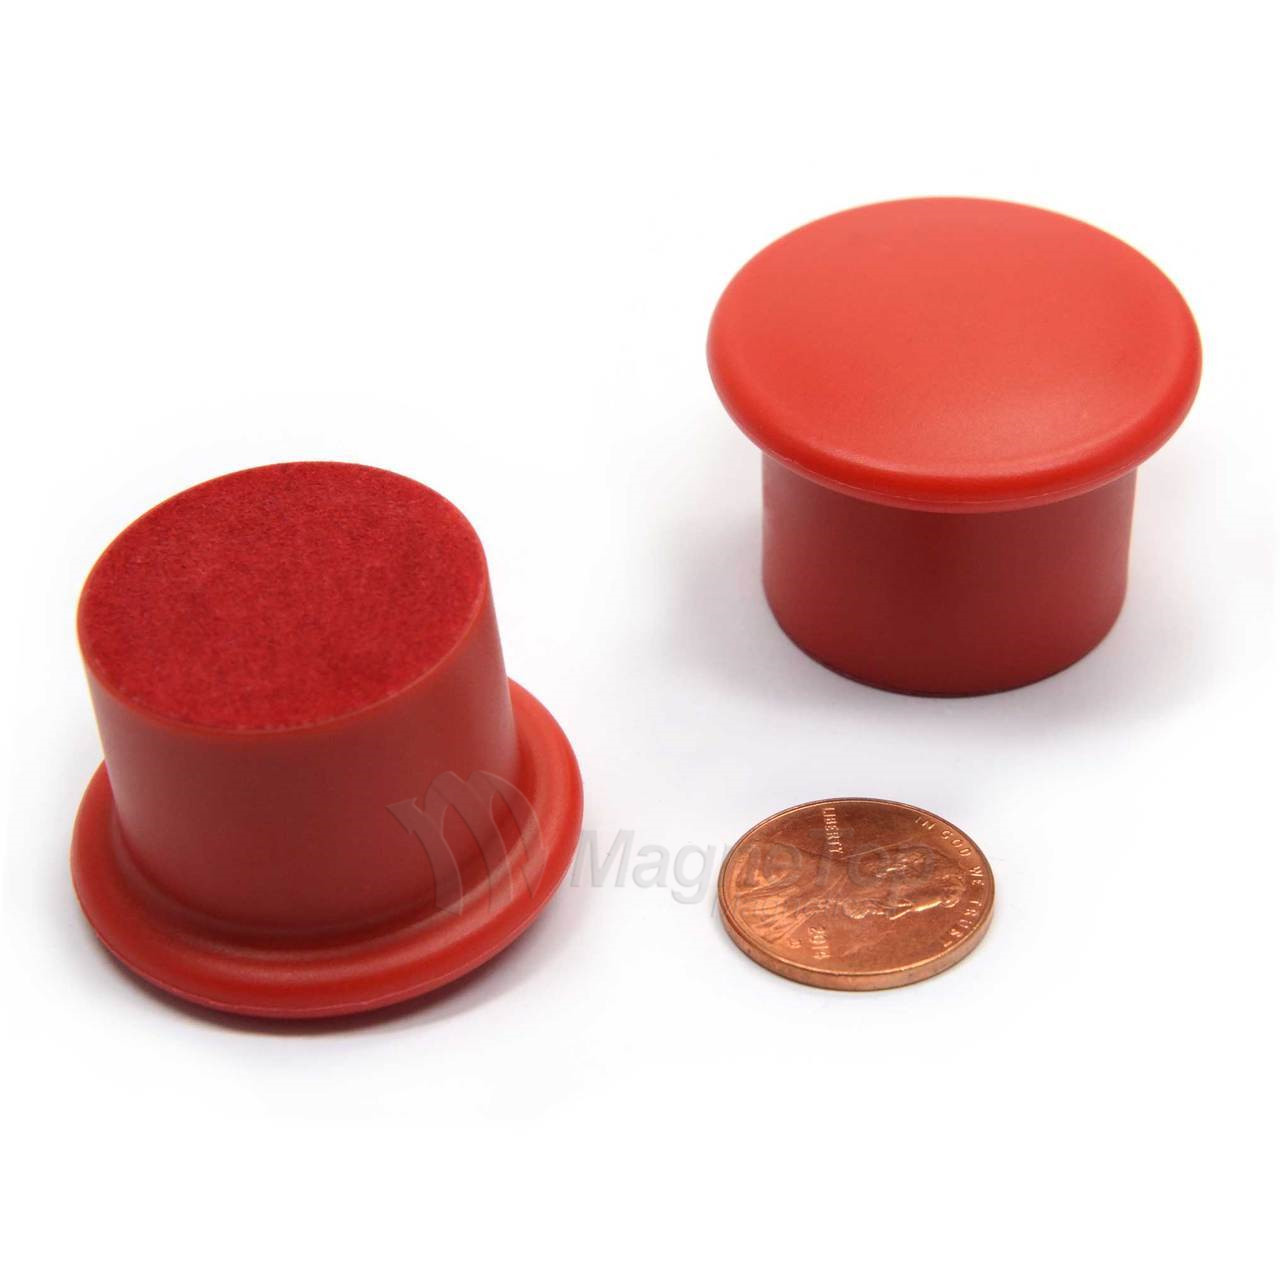 24 Pieces of Magnetic Whiteboard Round Holders Assorted Color